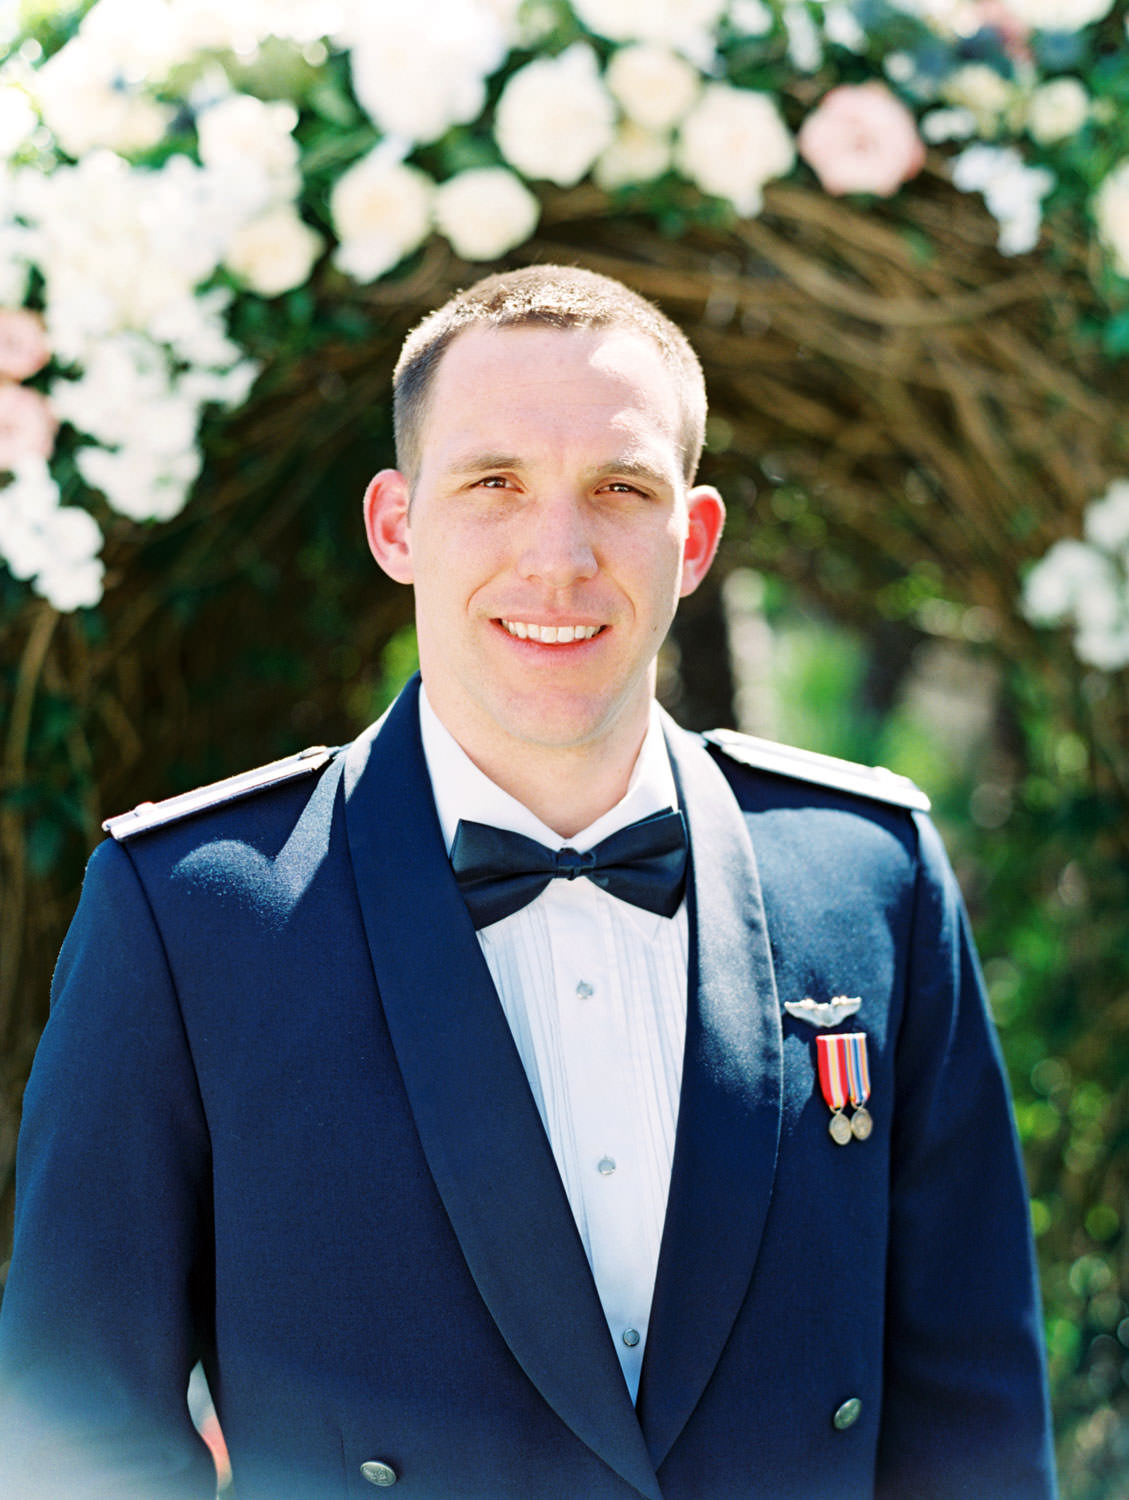 Groom wearing Air Force suit for his wedding on film. Wedding at Humphreys Half Moon Inn by Cavin Elizabeth Photography